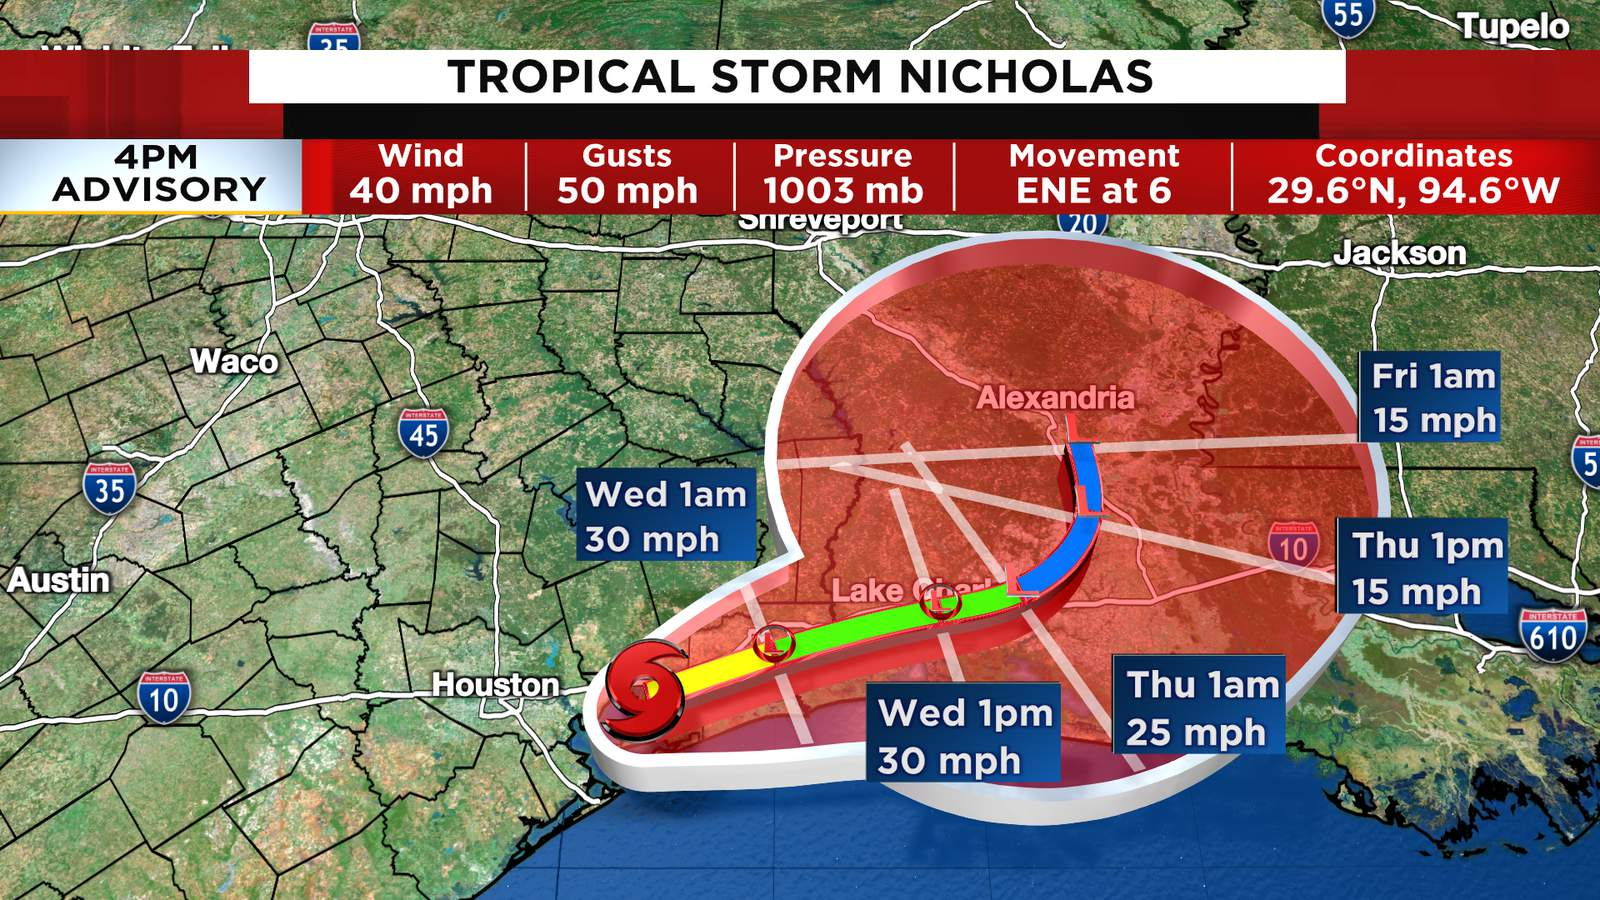 Nicholas will slow down and rain out over Louisiana for the next few days